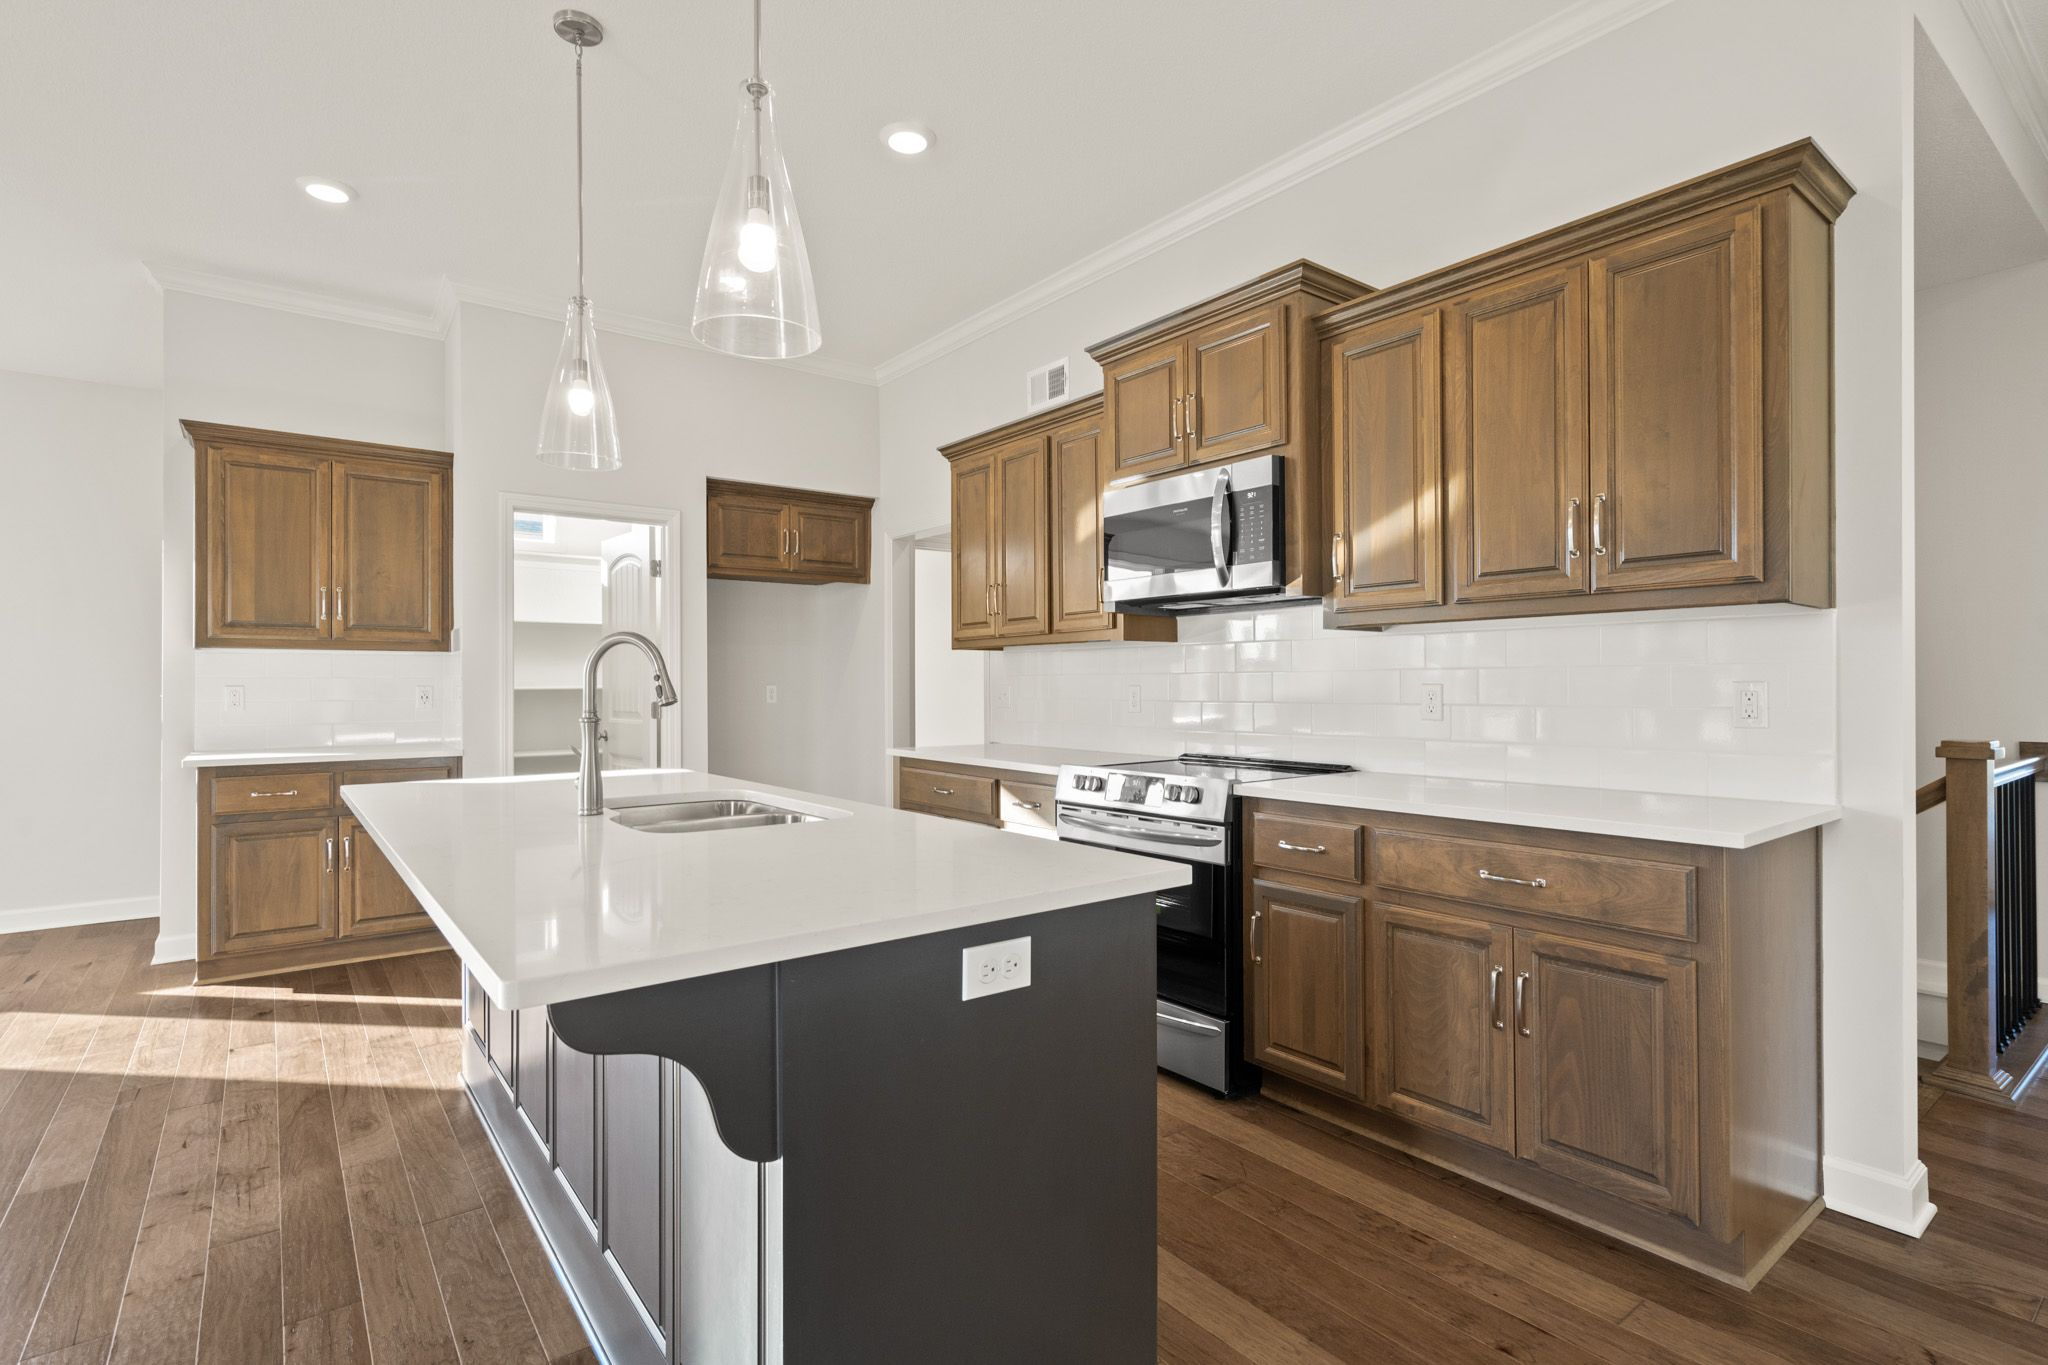 Kitchen featured in the Bradford - Care Free By Summit Homes in Kansas City, MO